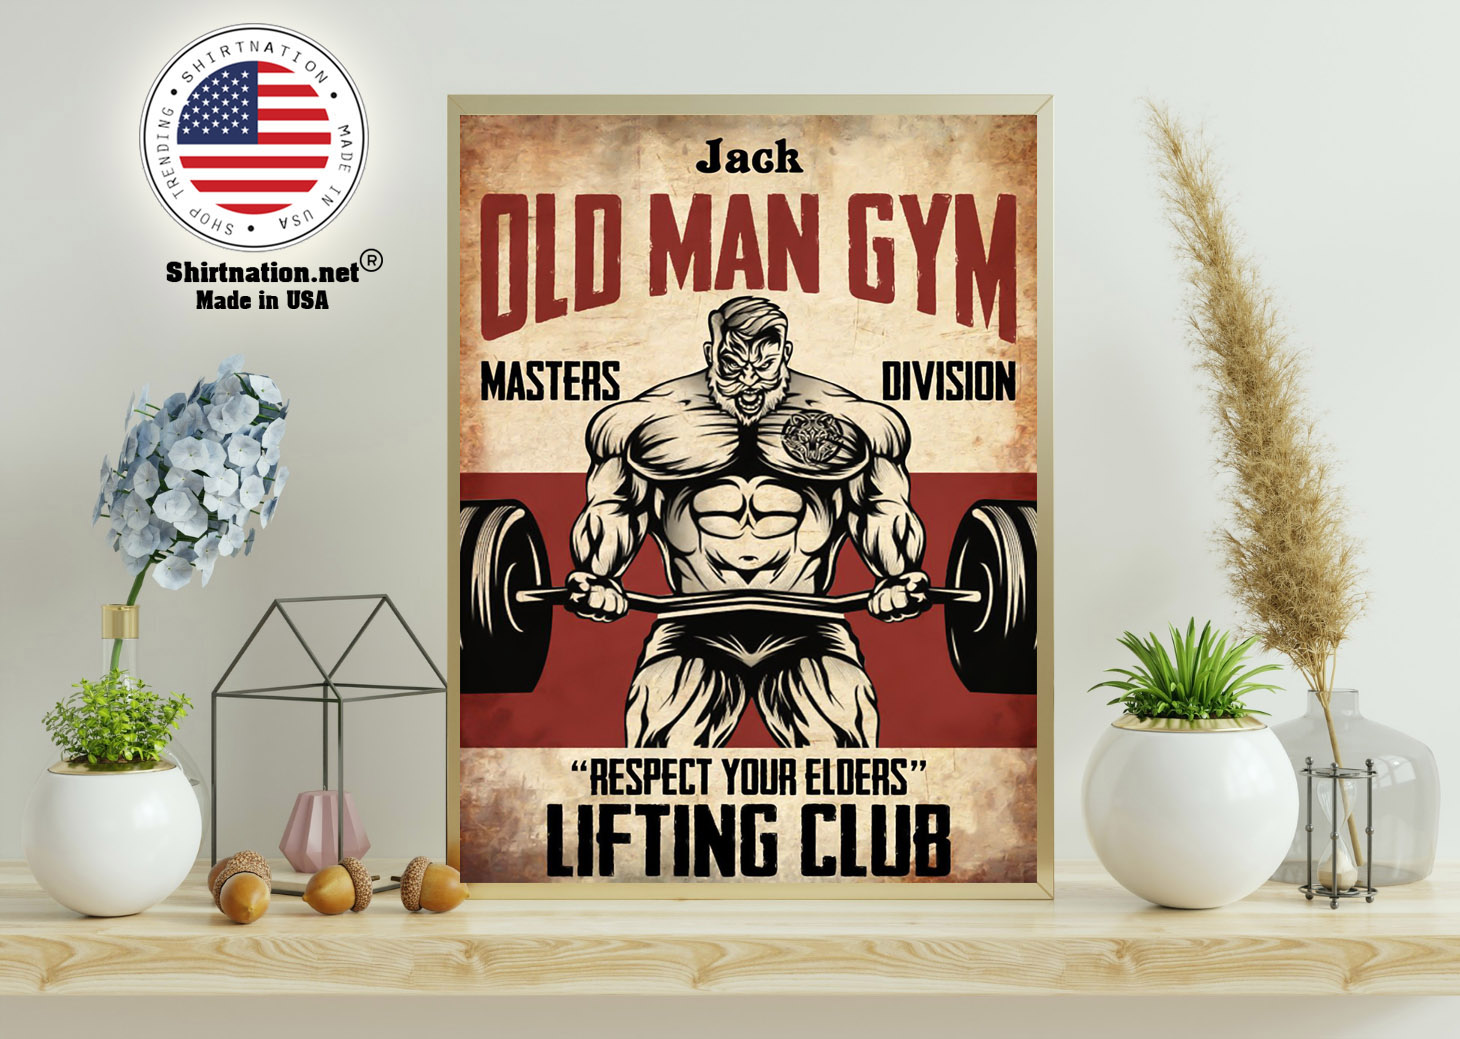 Old man gym masters division respect your elders lifting club poster 15 1